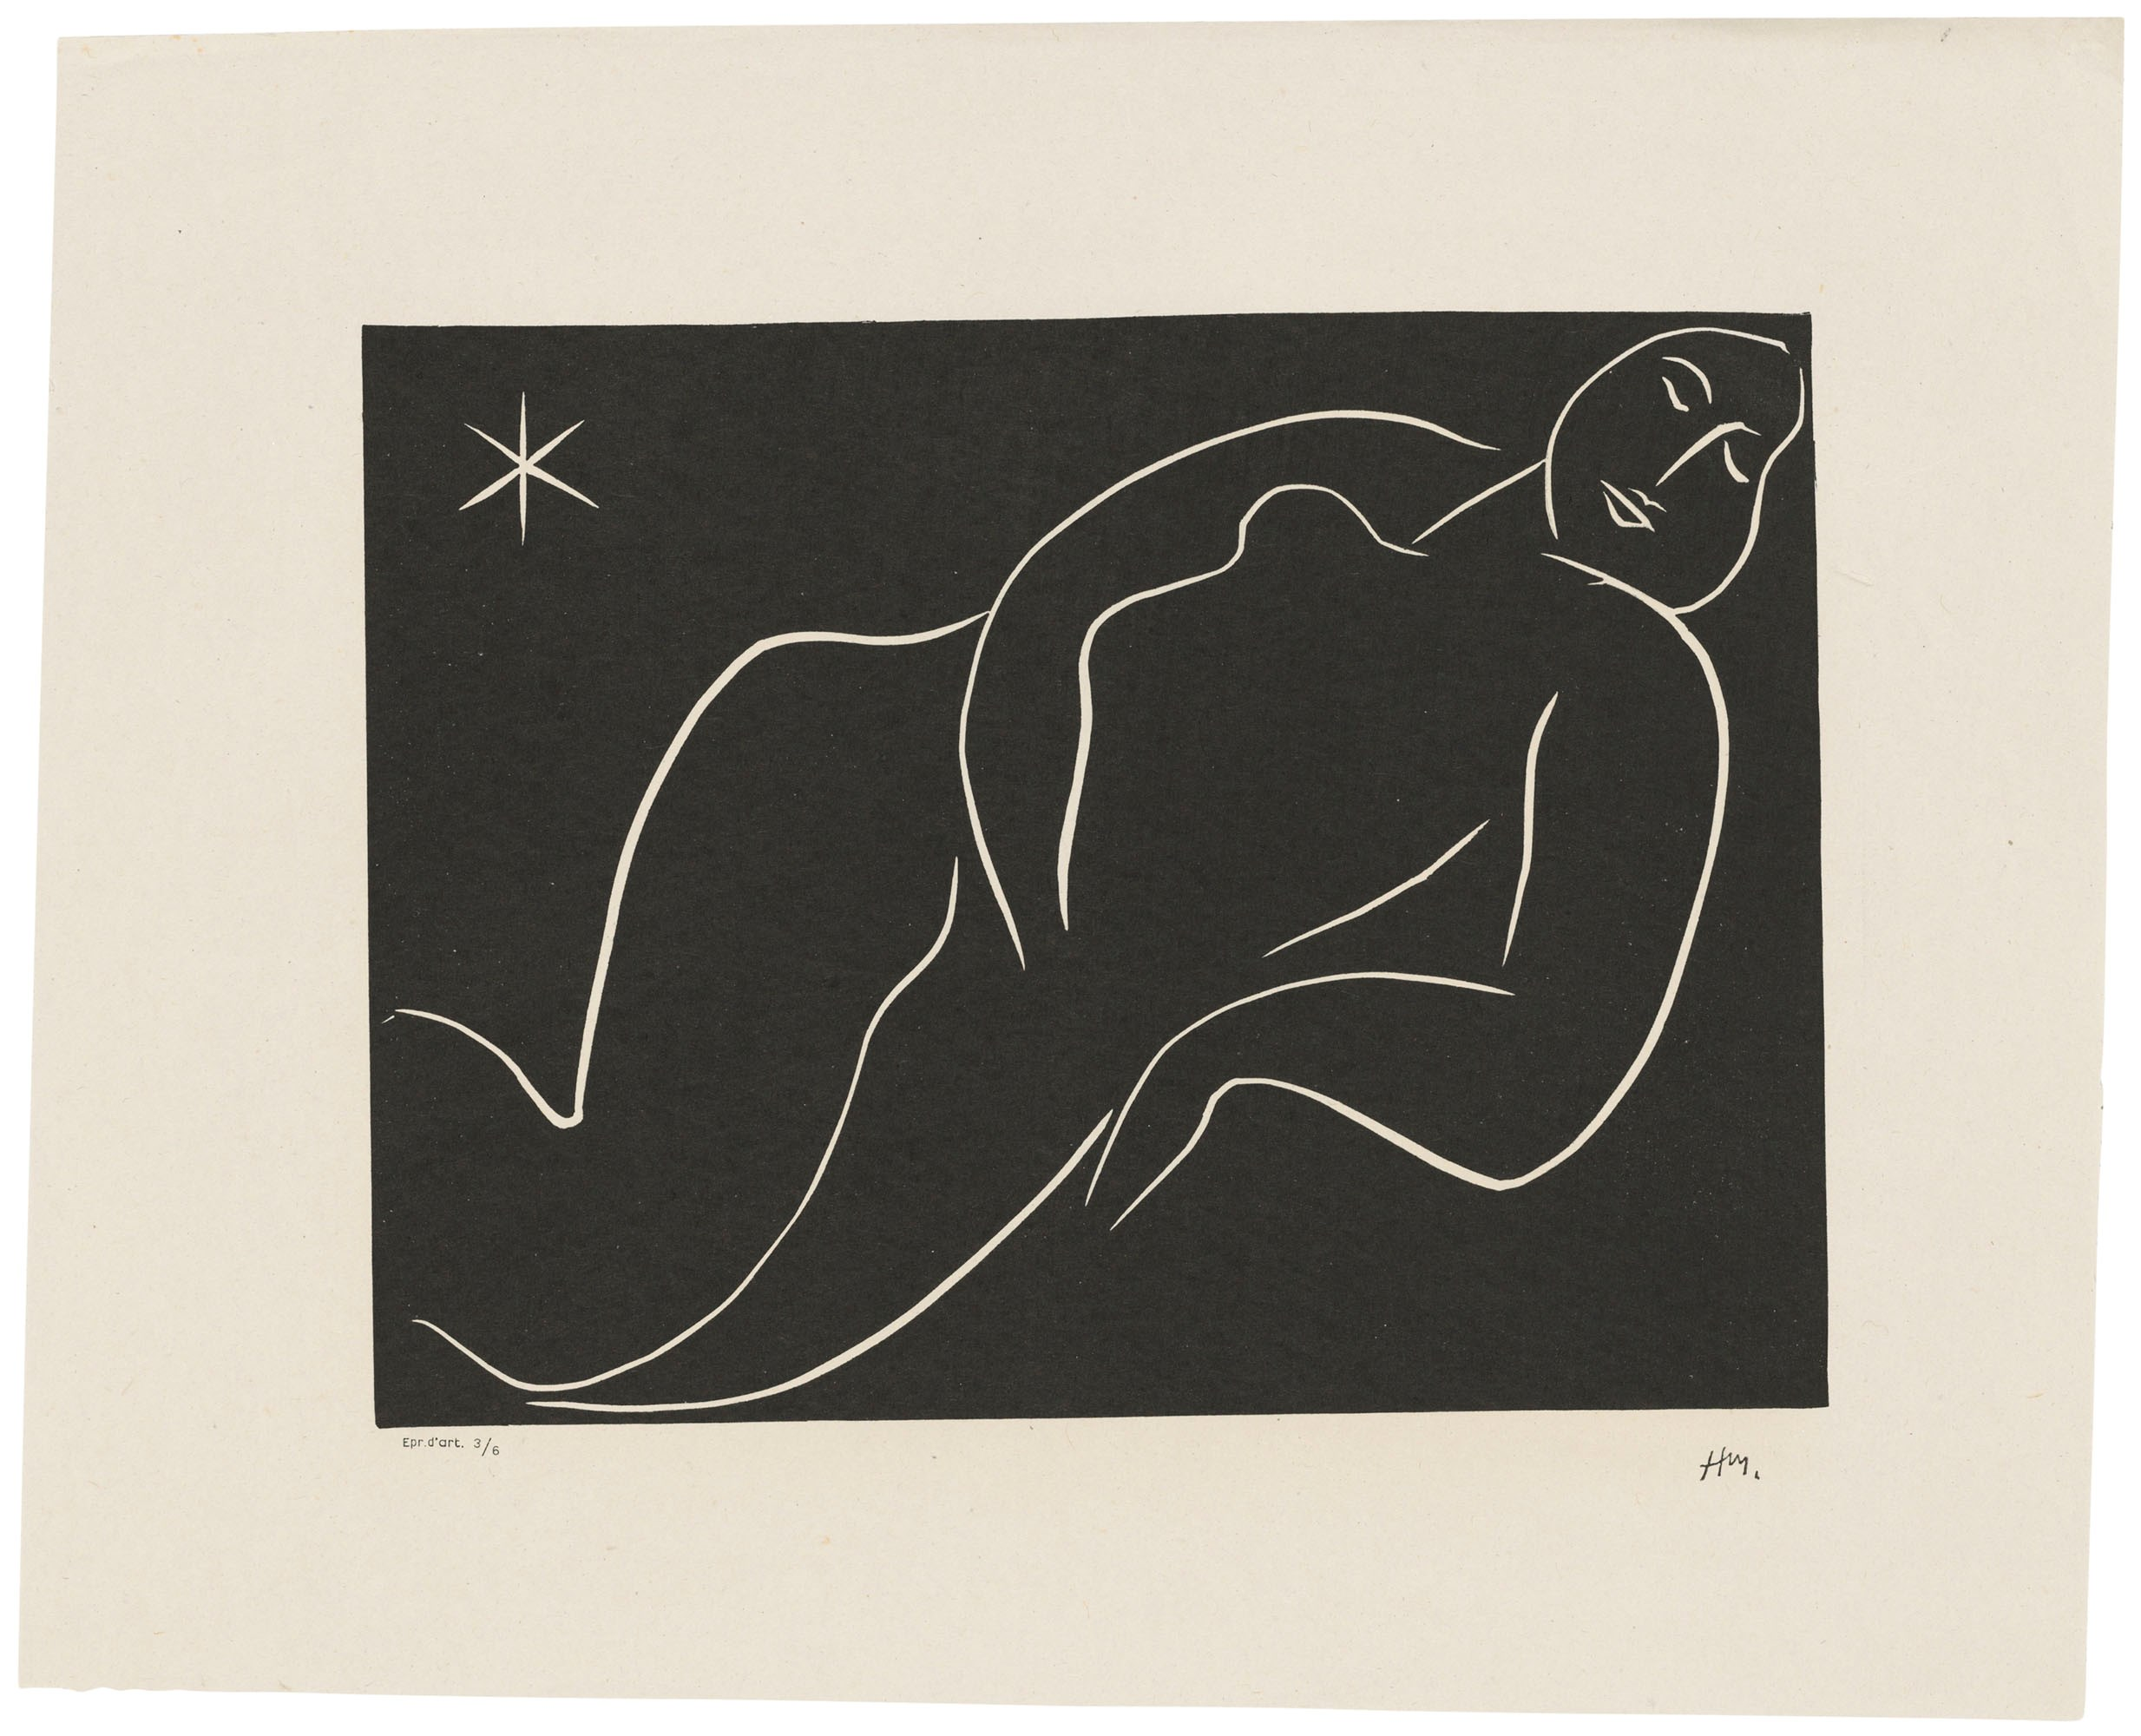 Henri Matisse (1869-1954), Nu à l'étoile, 1938. Linocut, on China paper. Block 234 x 311 mm. Sheet 357 x 445 mm. Estimate £9,000-12,000. Offered in Prints & Multiples on 31 March 2021 at Christie's Online